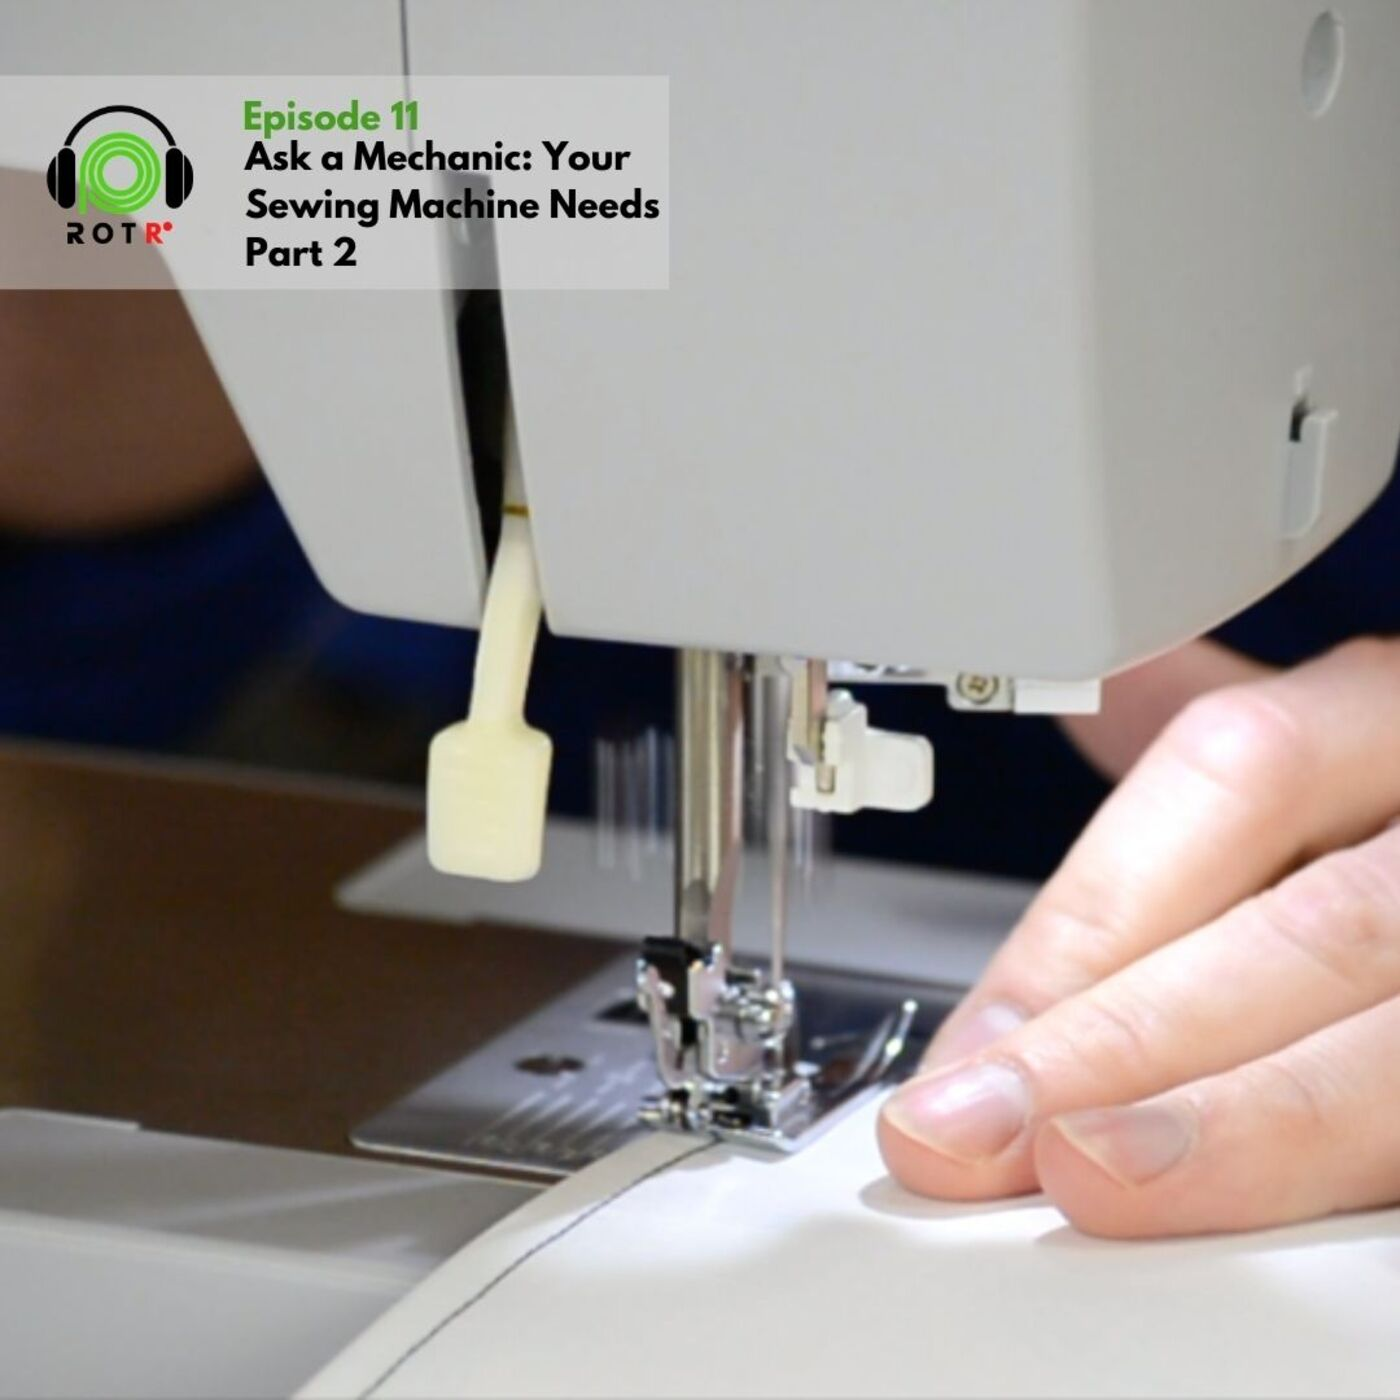 Ask a Mechanic - Your Sewing Machine Needs Part 2